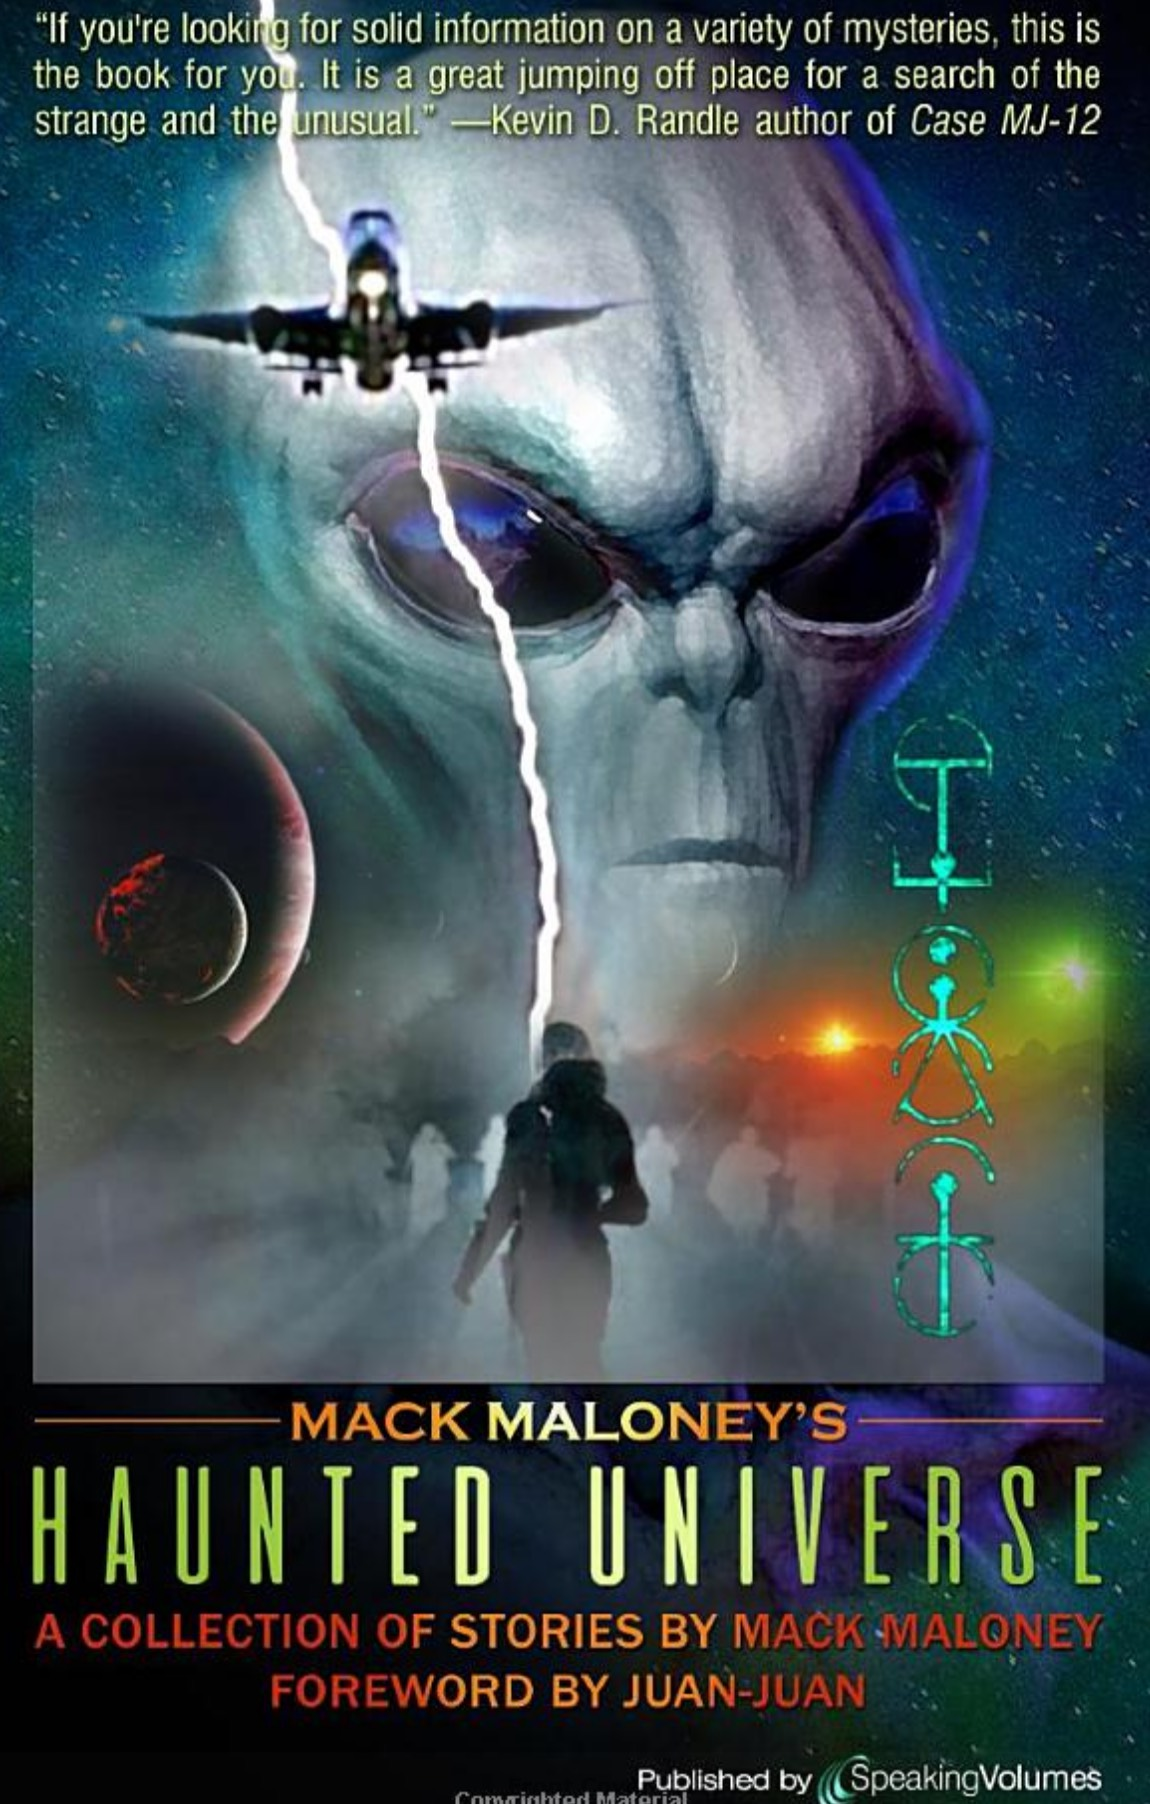 Mack Maloney's Haunted Universe #78